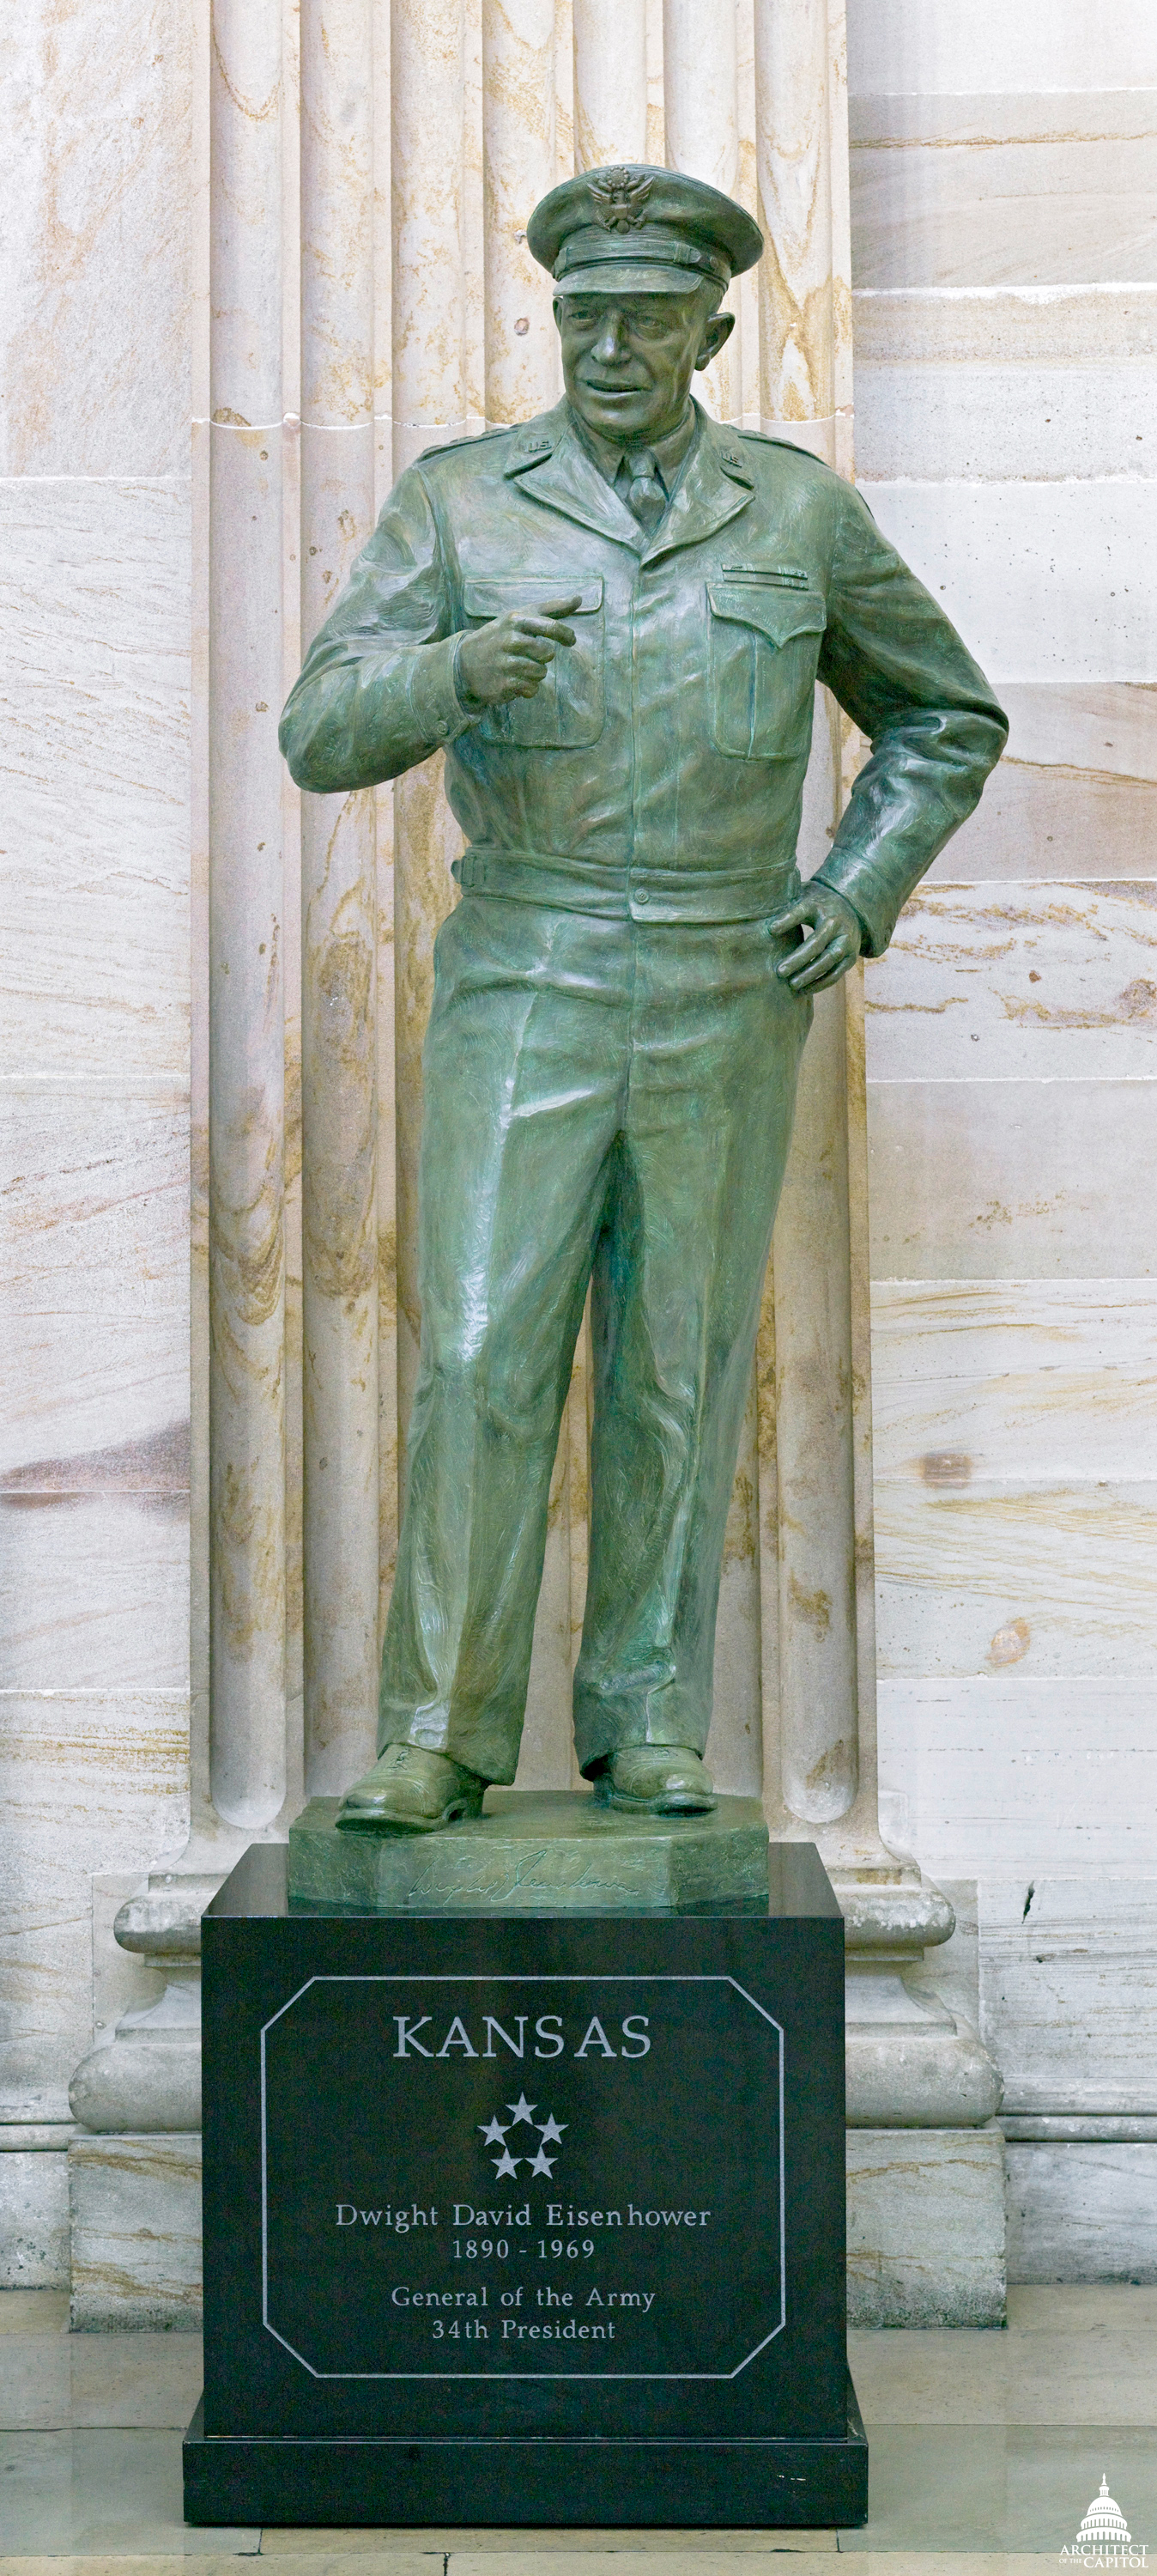 Dwight D Eisenhower Architect Of The Capitol